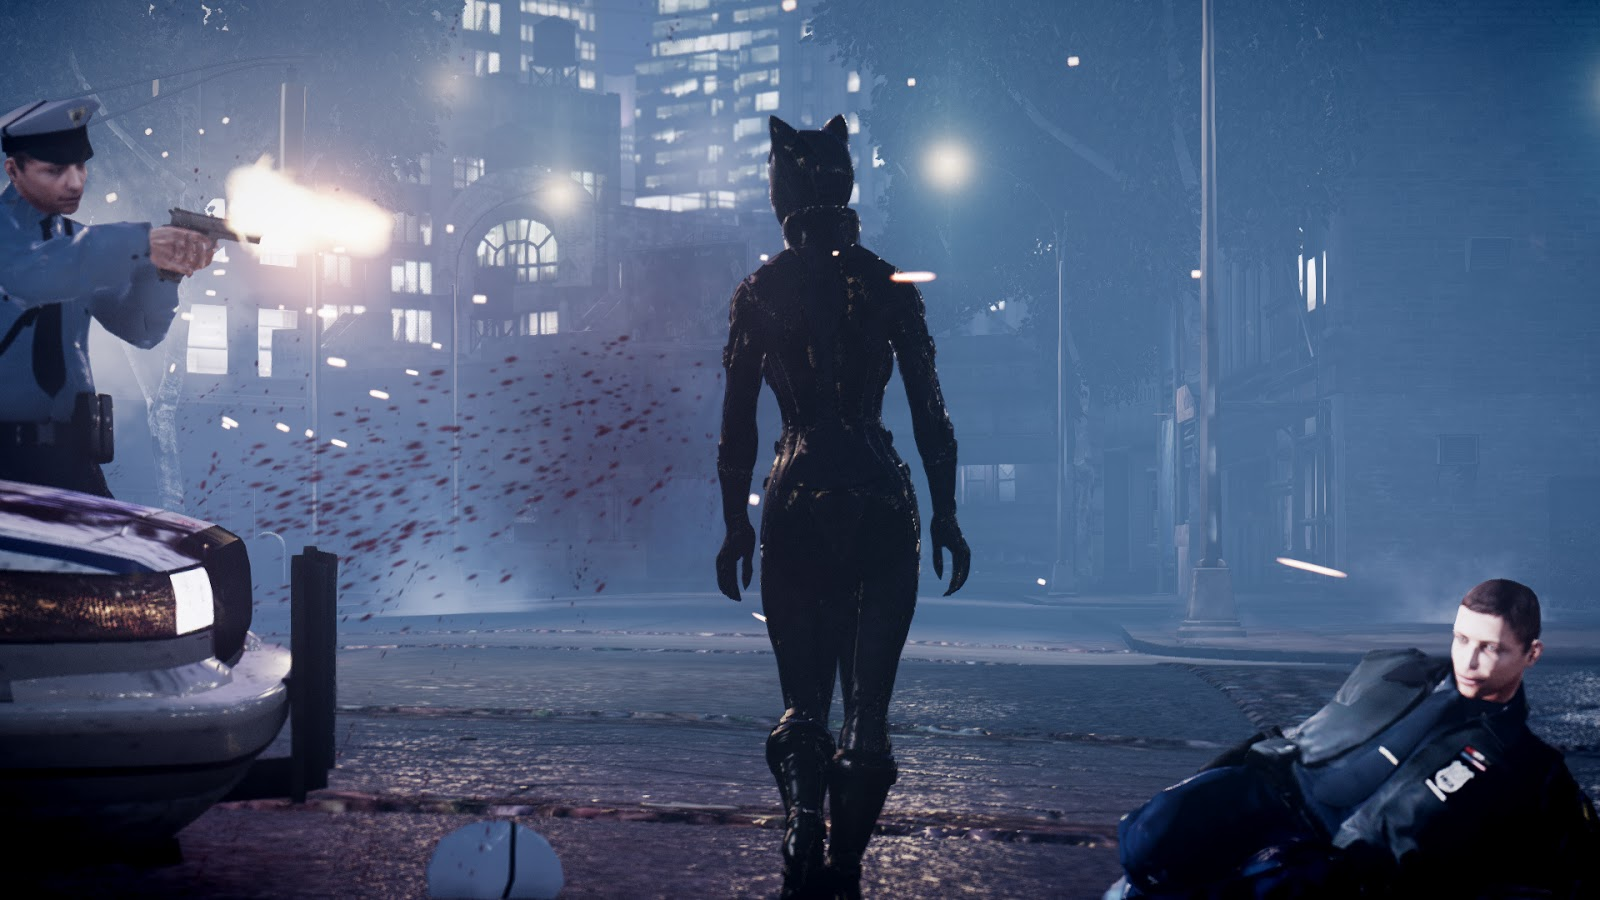 Arkham city cat woman mod erotic photo